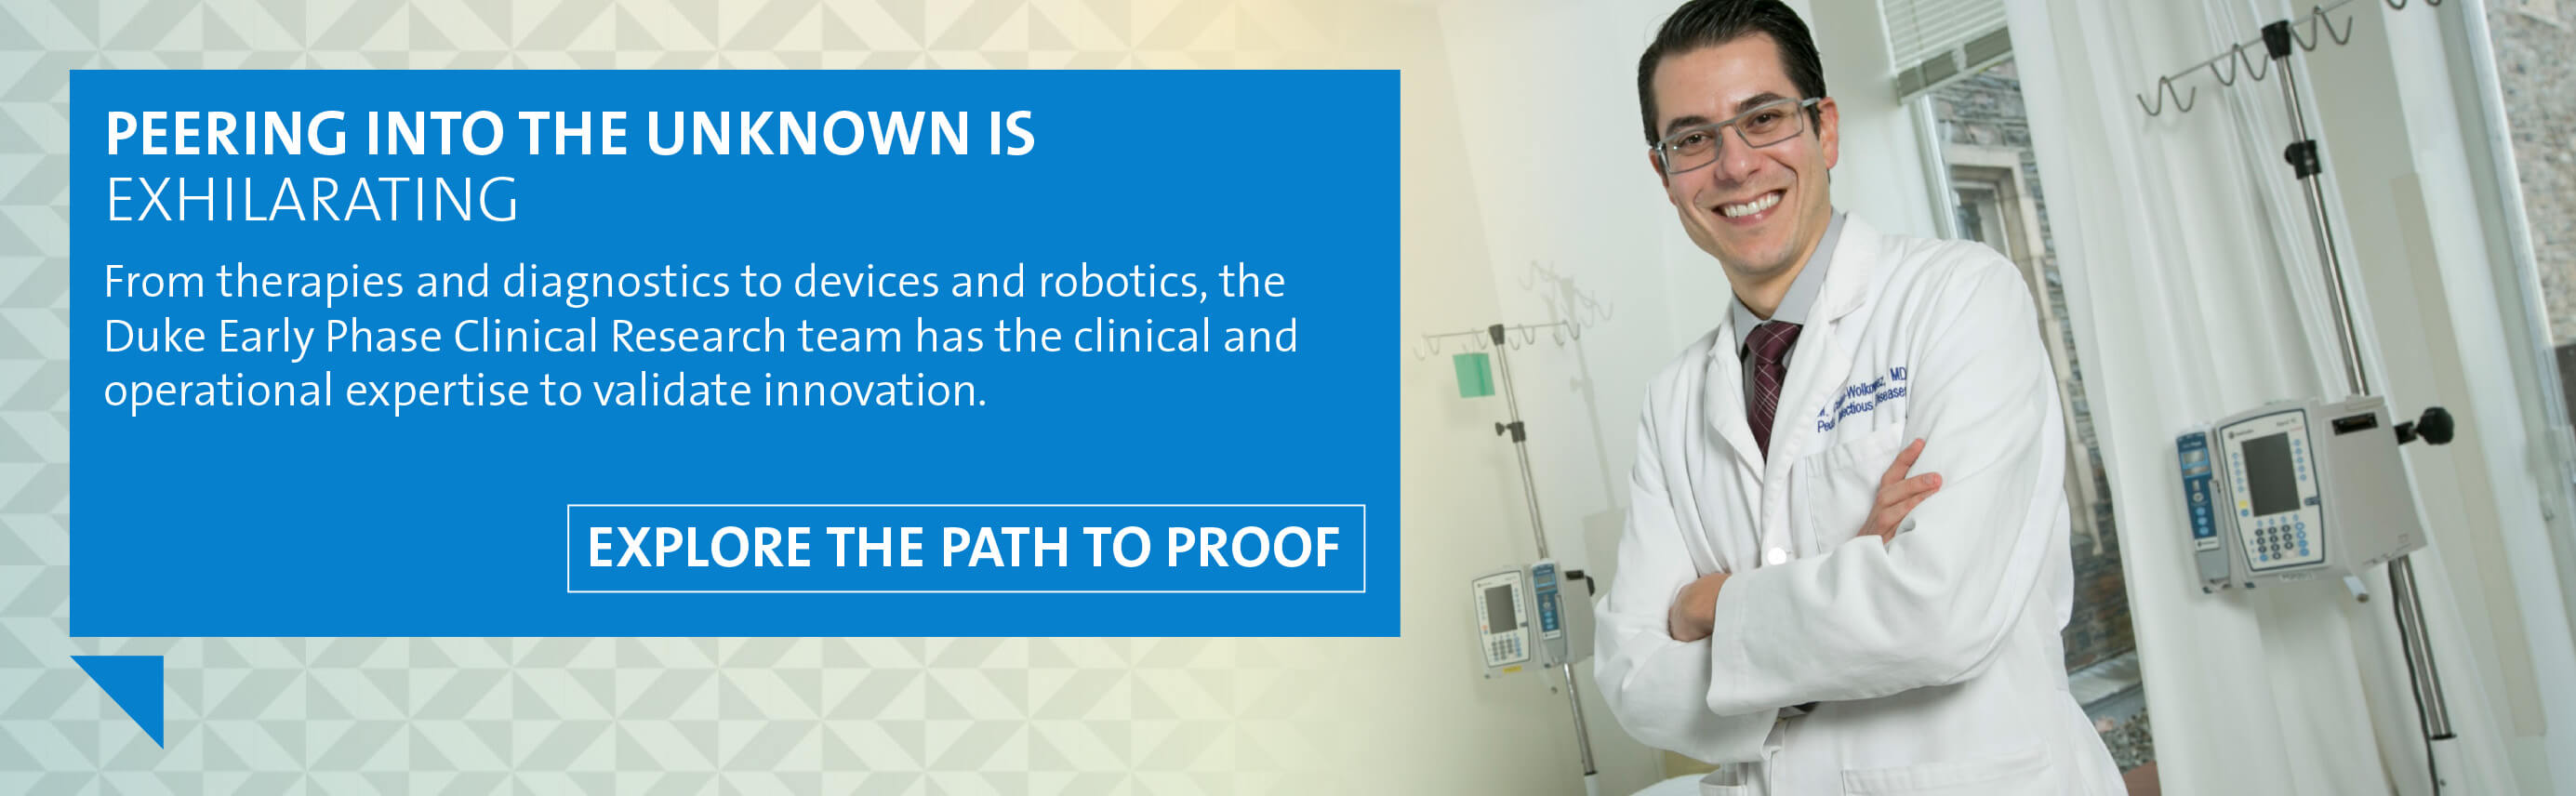 Peering in the unknown is exhilarating. From therapies and diagnostics to devices and robotics, the Duke Early Phase Clinical Research team has the clinical and operational expertise to validate innovation. Click here to explore the path to proof.